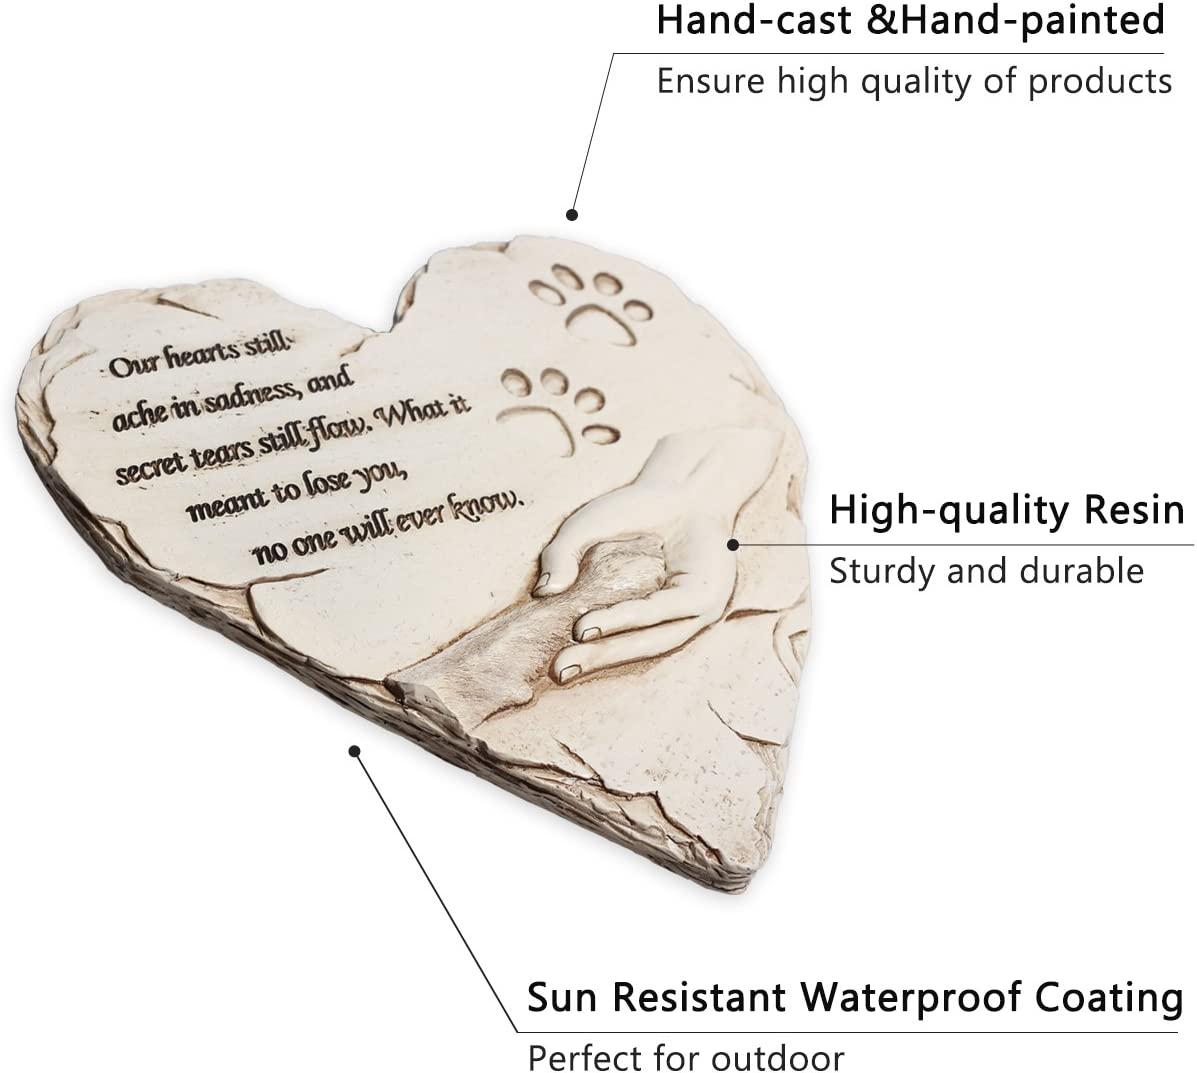 Personalized Loss of Pet Gifts Features a Heart-Shaped Styling Photo Frame and Paw Print jinhuoba Pet Memorial Stones